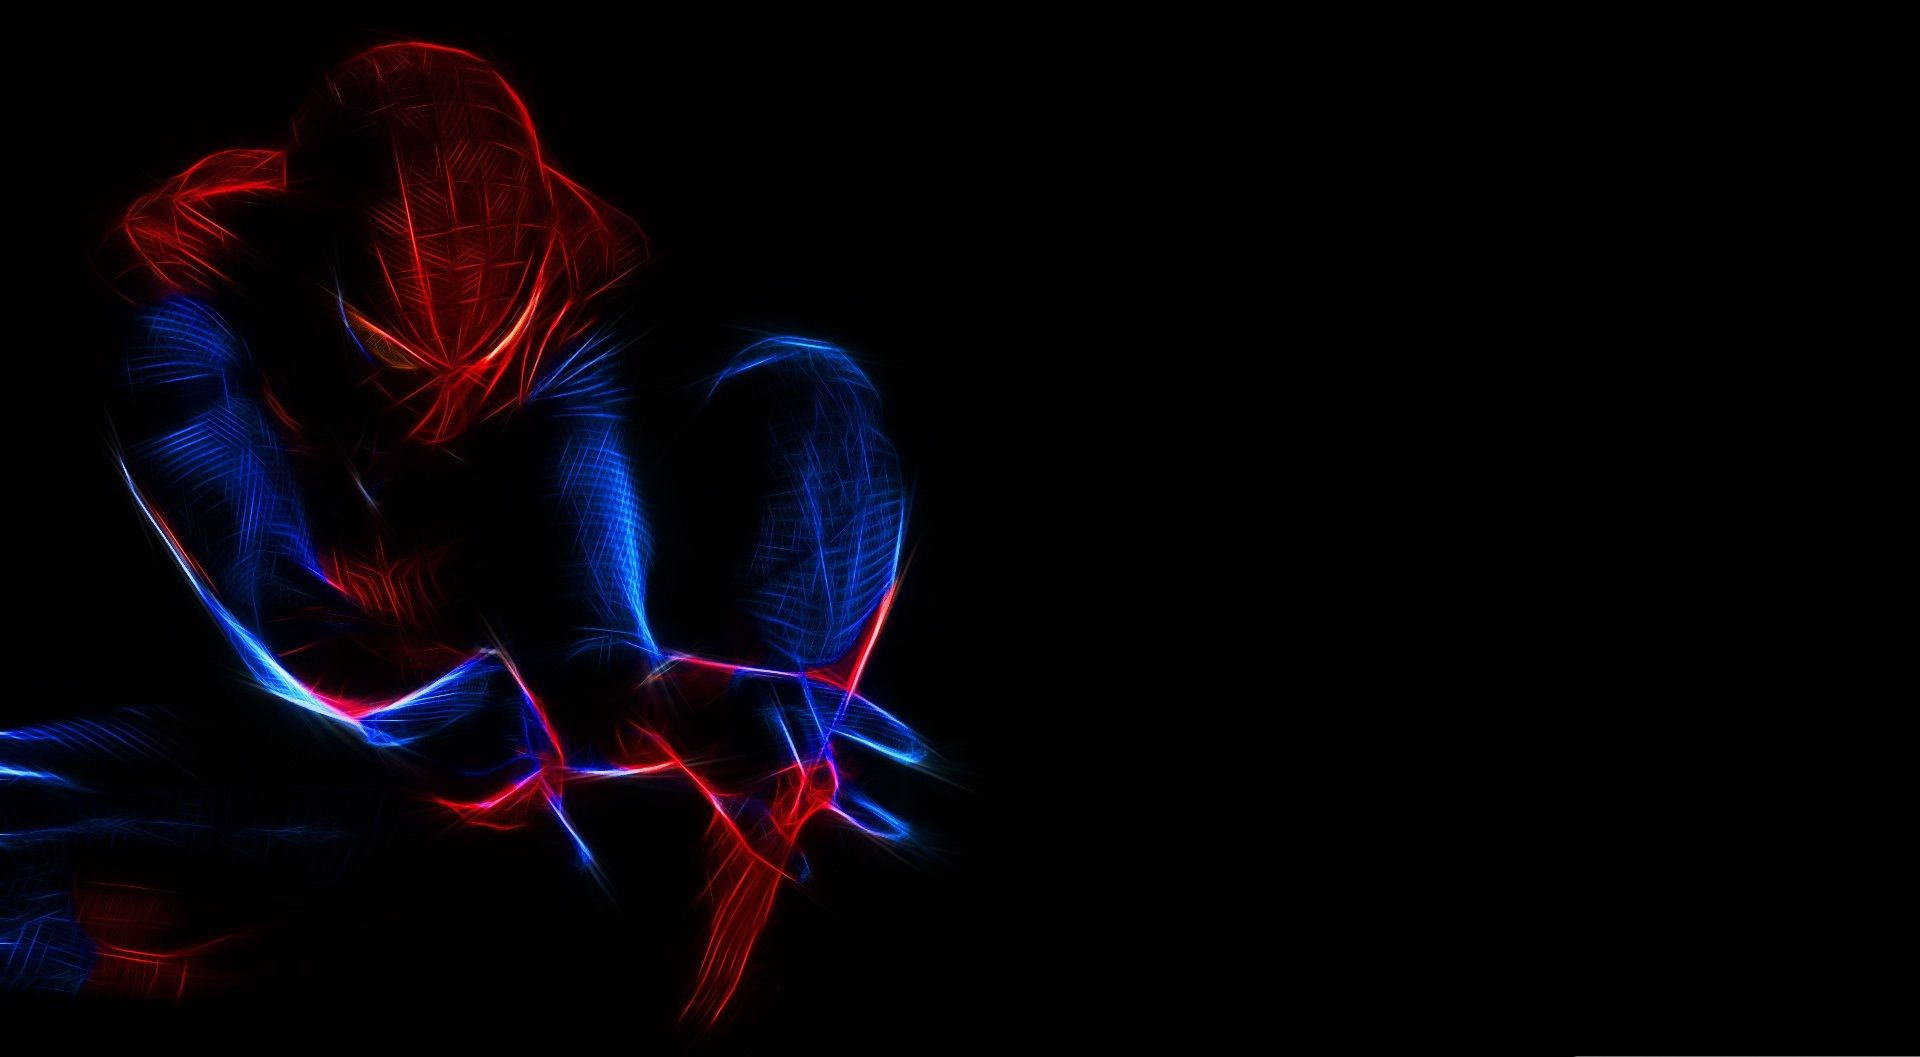 3D Spiderman Hd Background Wallpaper 28 Dengan Gambar